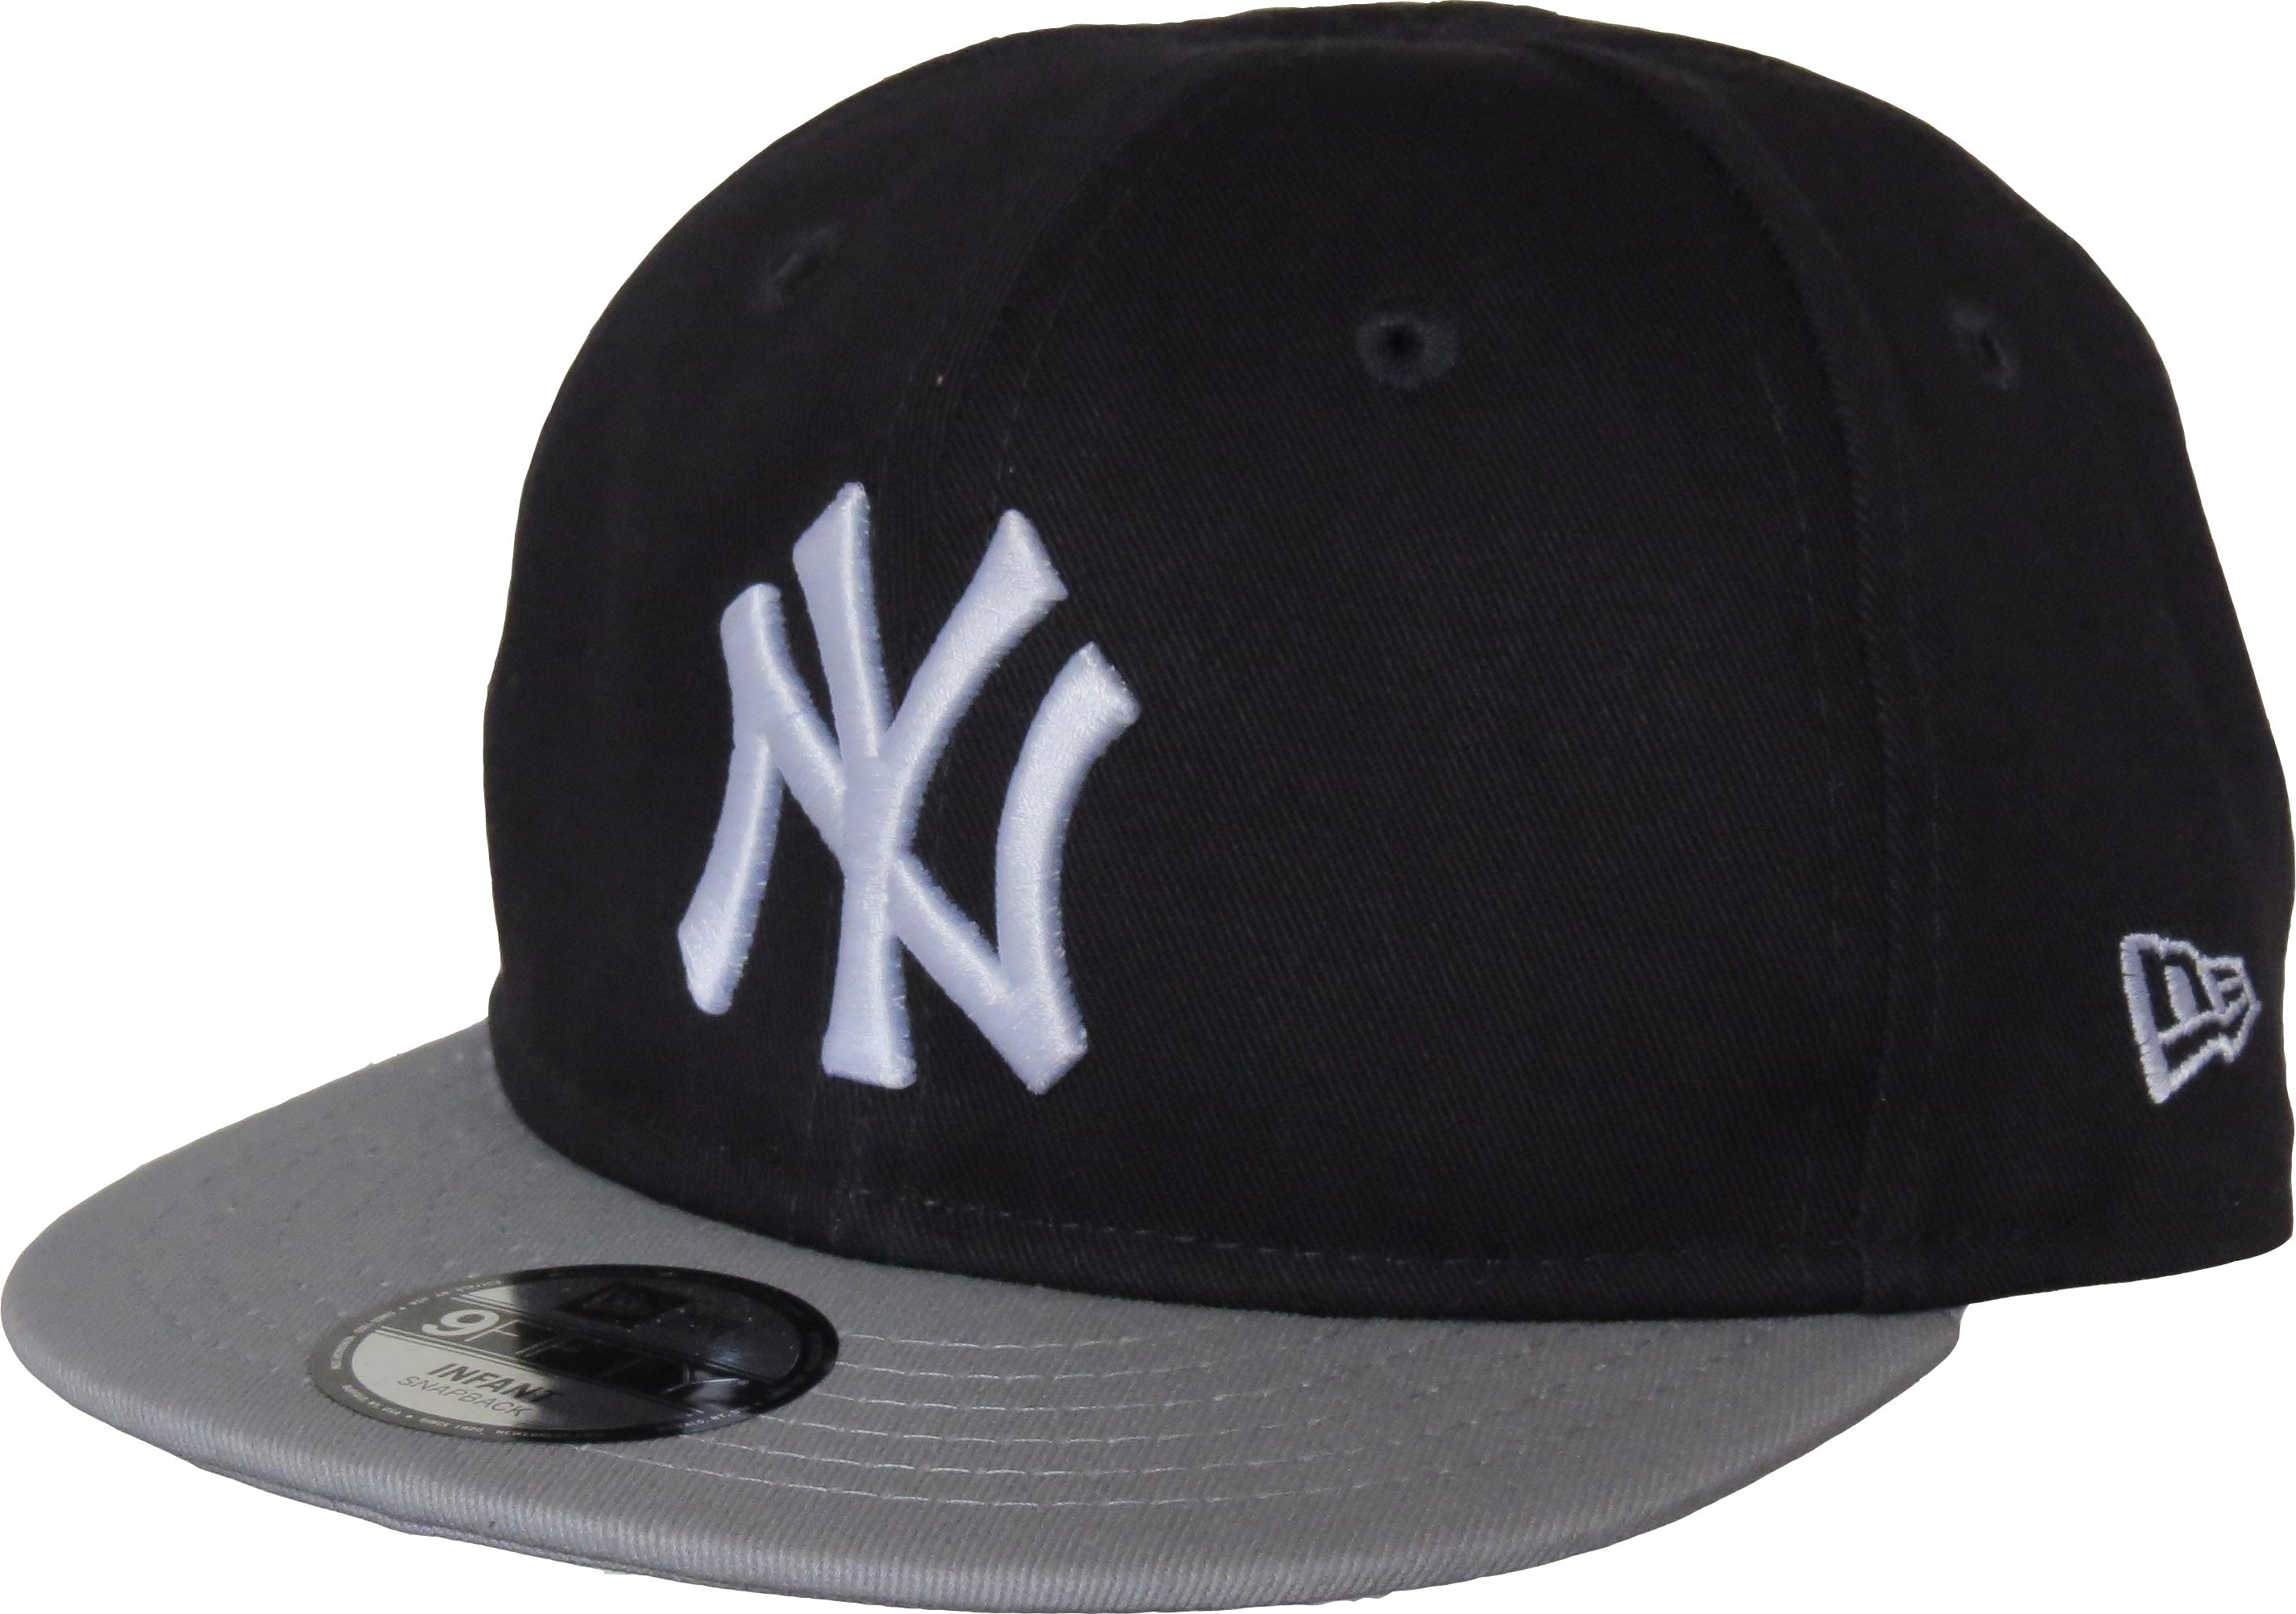 17342c5ad7a New Era 950 My 1st NY Yankees Infant Snapback Cap ( 0 - 2 years old ) –  lovemycap